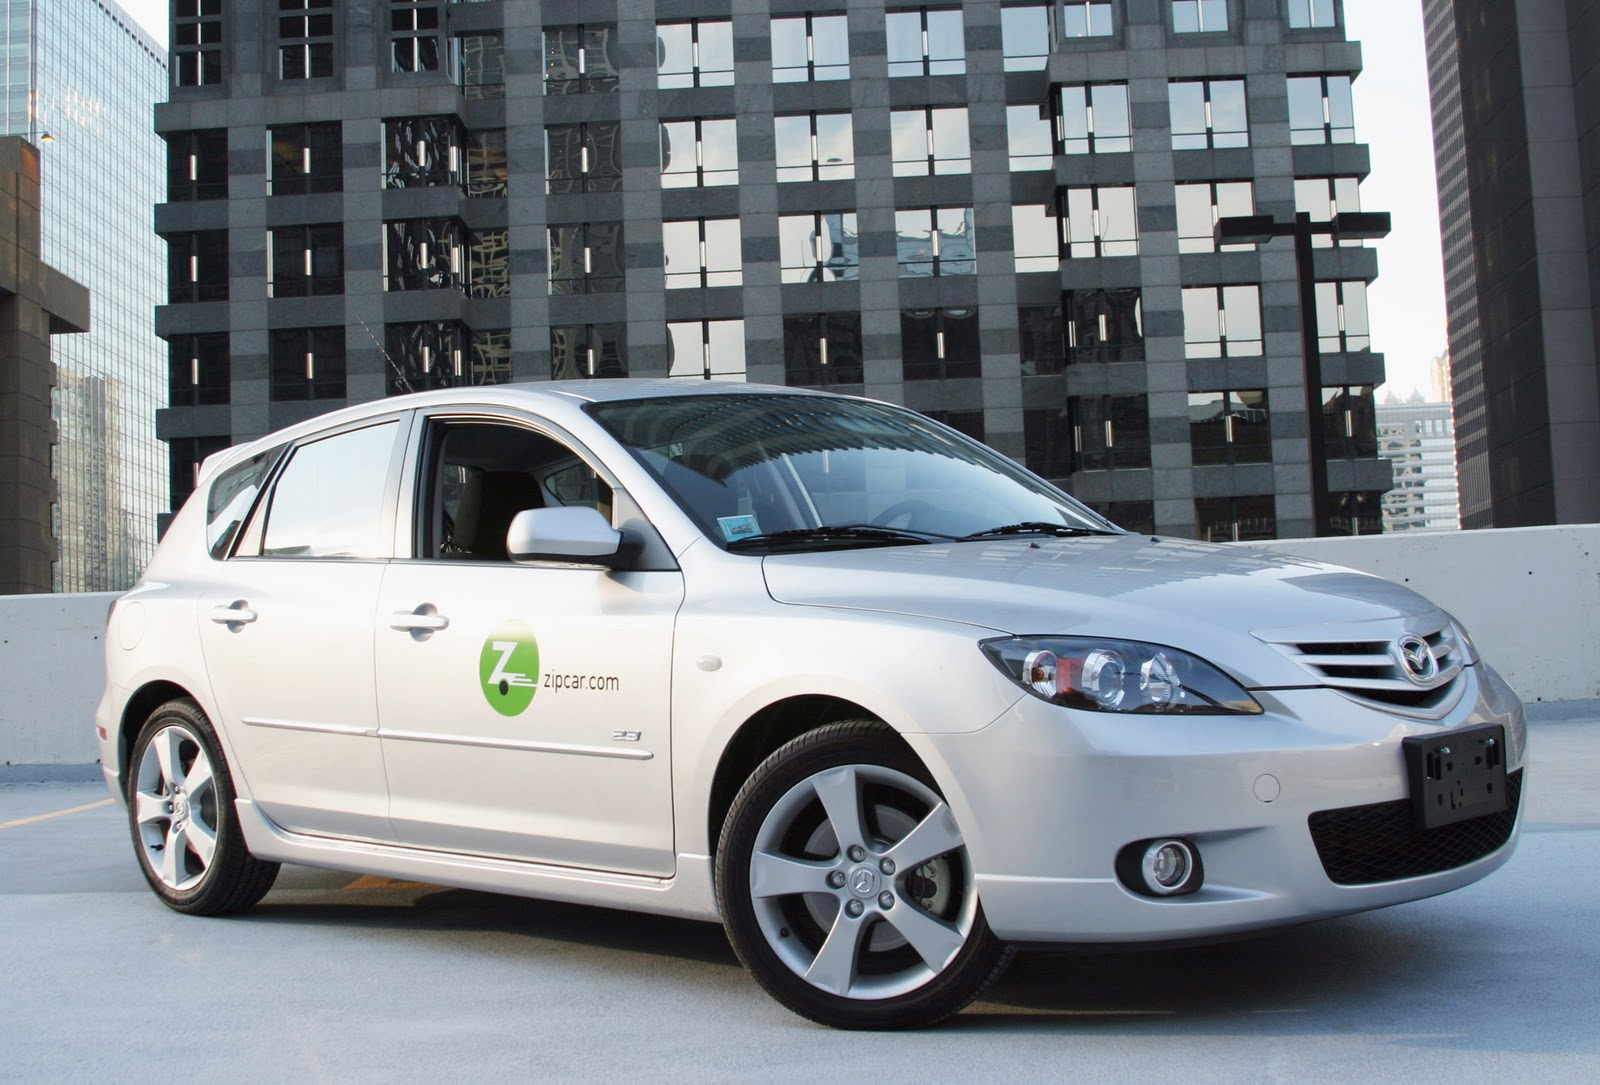 Weekend Trips: Zipcar vs Car2go vs Used Car | ModernAdvisor Blog